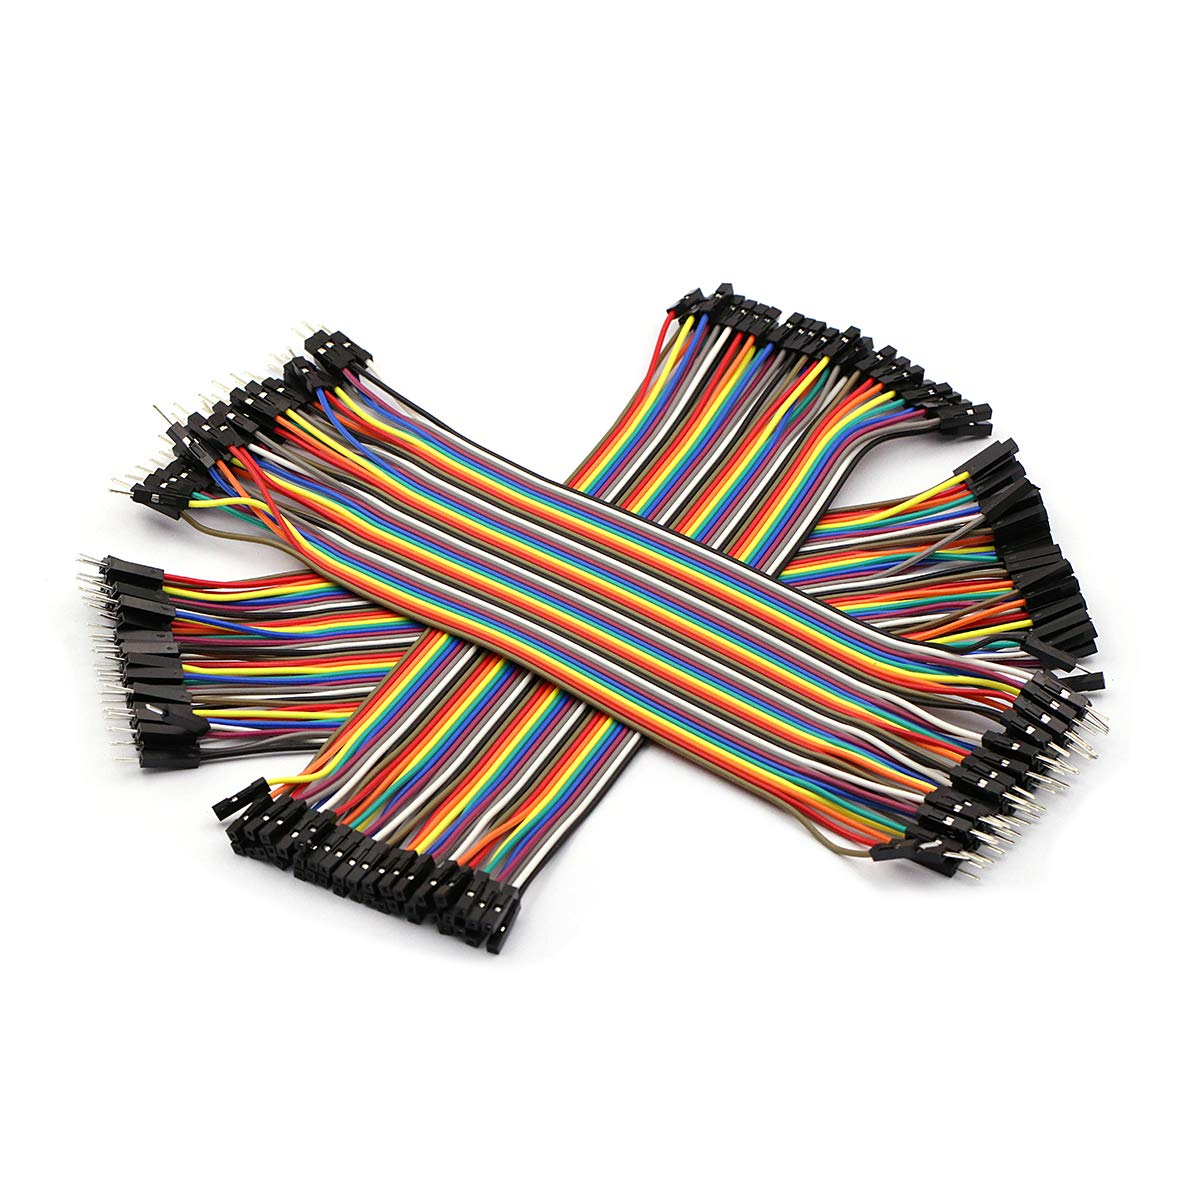 DaFuRui 120pcs 21cm Multicolor Dupont Wire Breadboard Jumper Wire 40 pines macho a hembra, 40 pines macho a macho, 40 pi